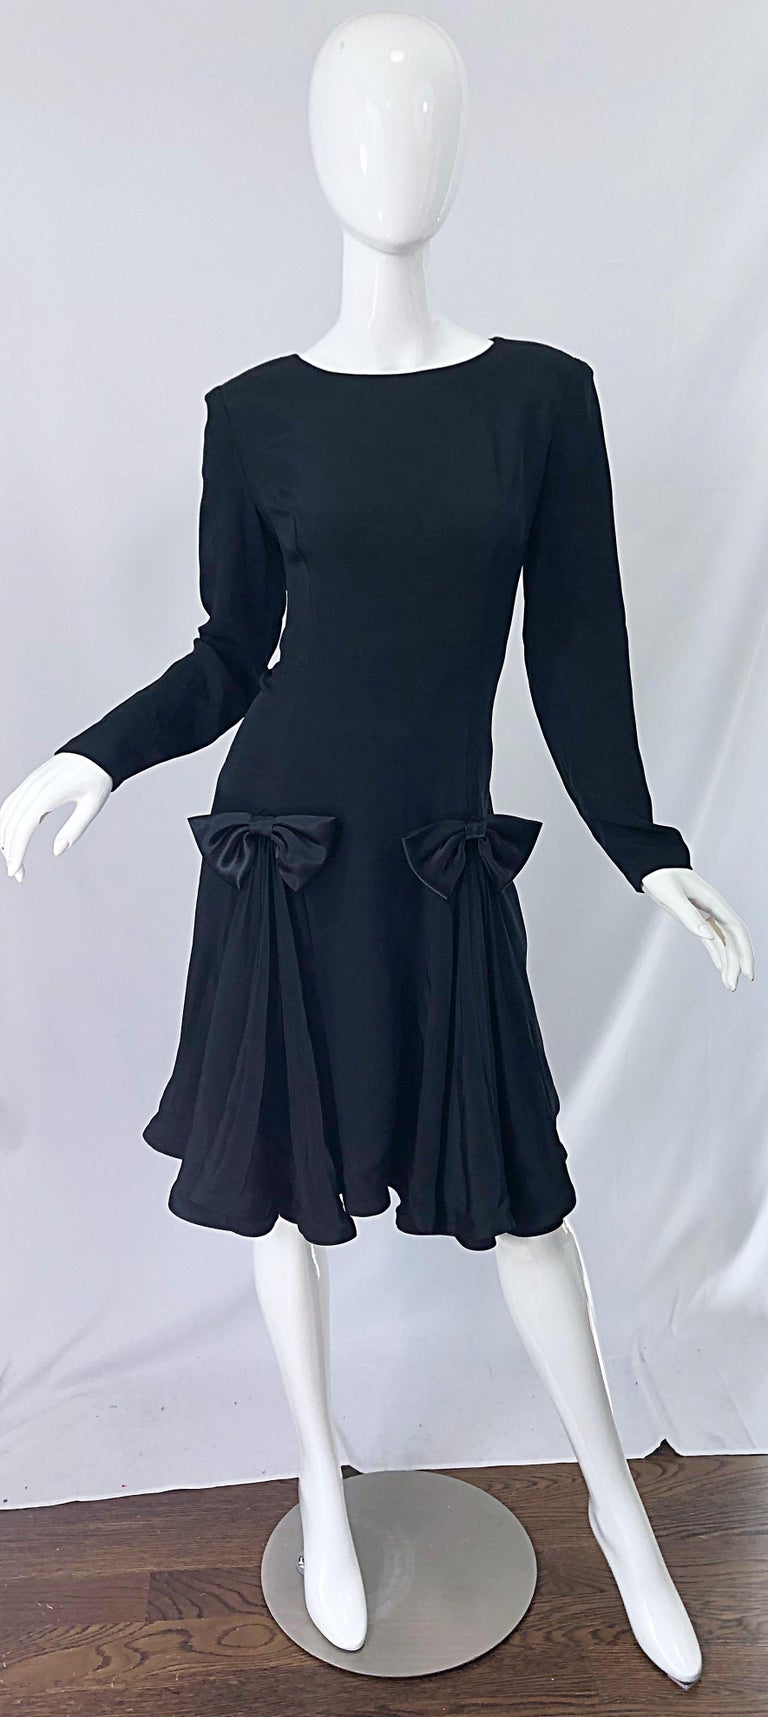 Timeless vintage early 90s PIERRE CARDIN black silk long sleeve bow dress ! Features a tailored bodice with a forgiving full pleated skirt. Hidden zipper up the back with hook-and-eye closure. The perfect little black dress that is great for any